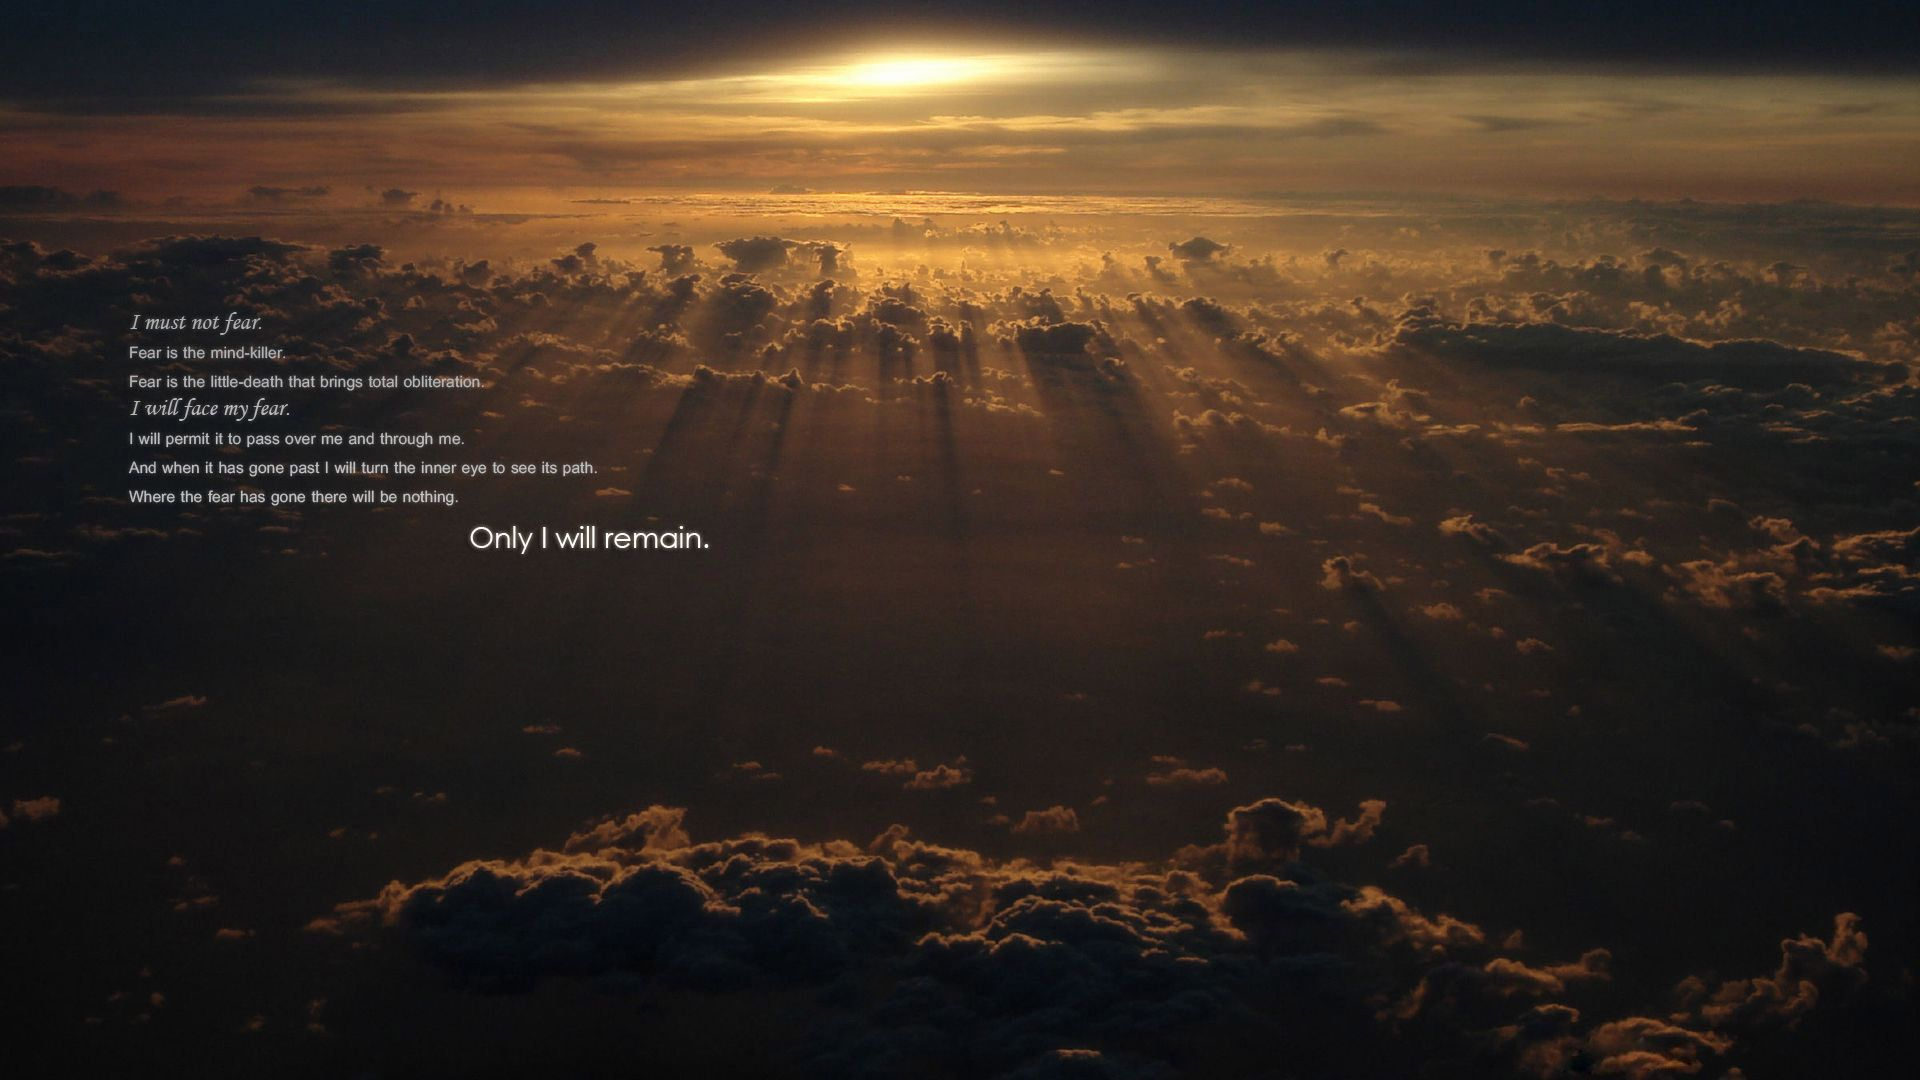 Dune Quote Extraordinary Wallpaper High Definition